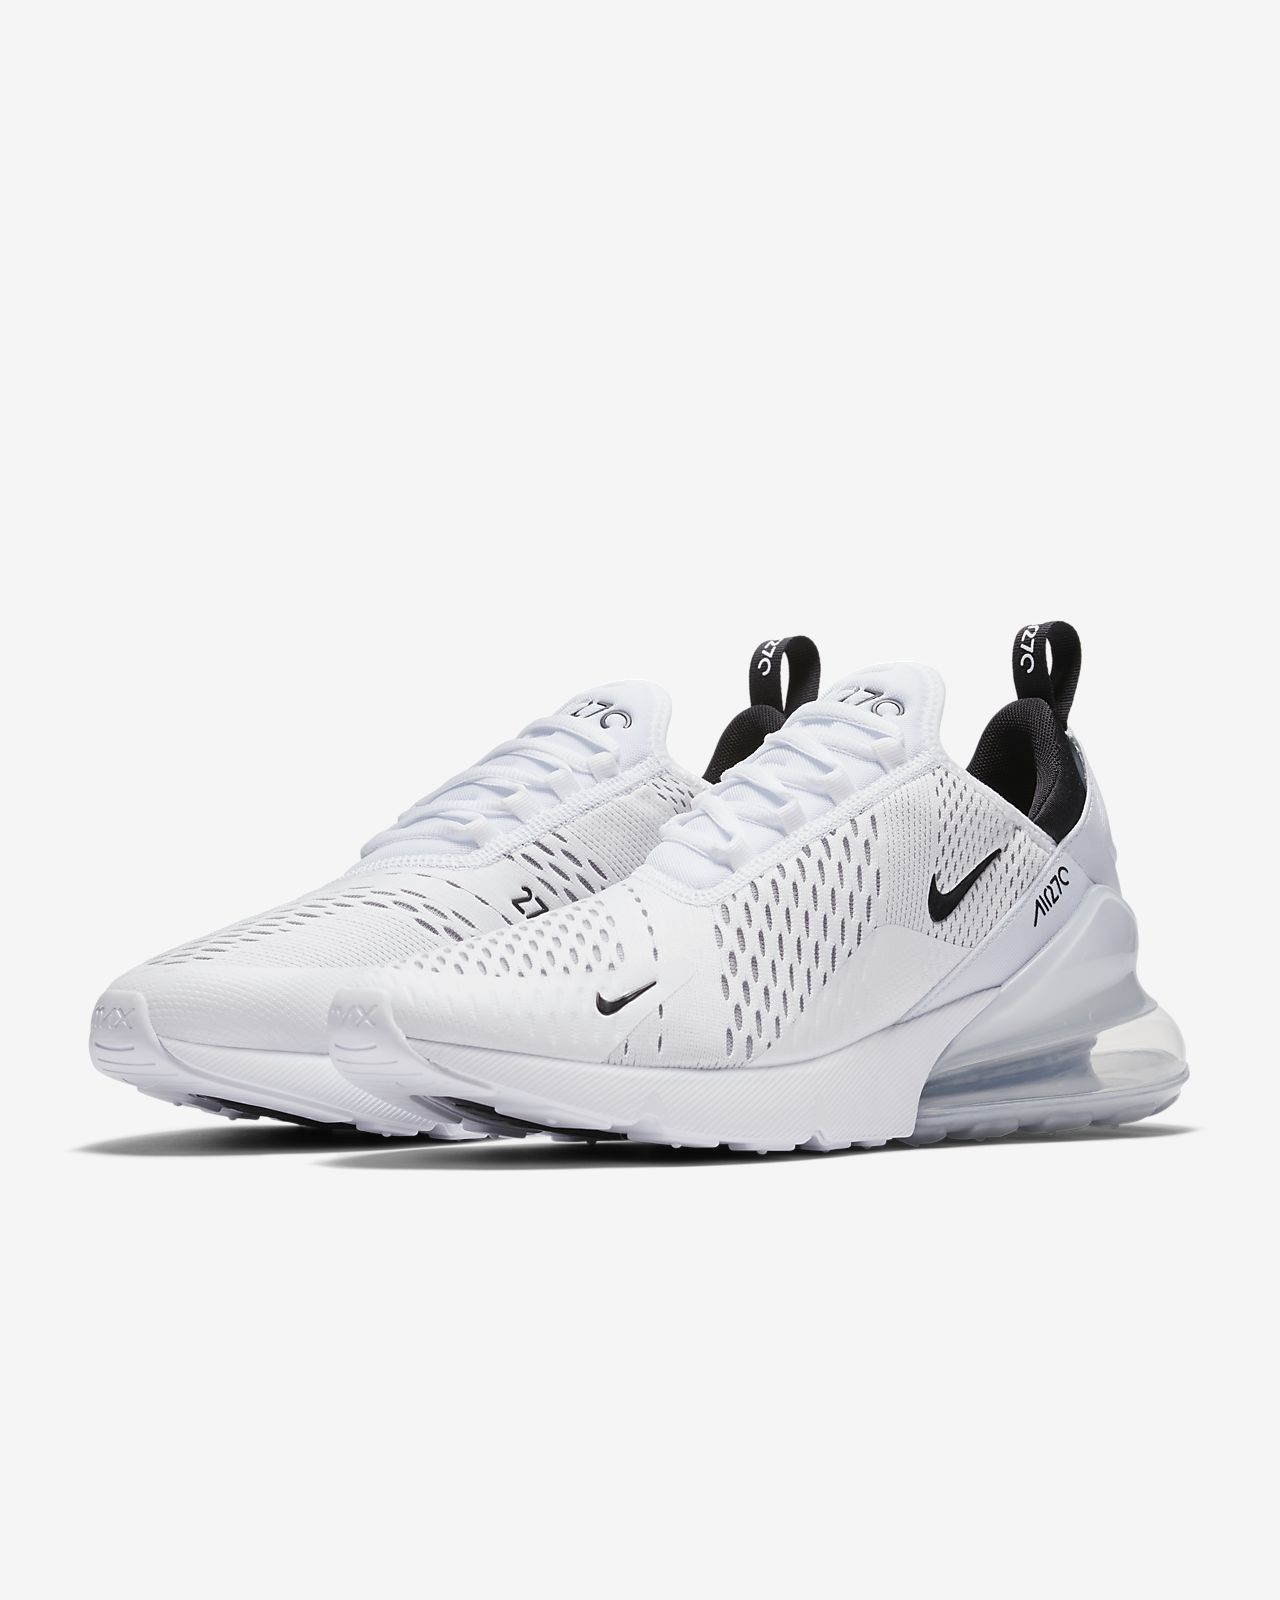 Nike Air Max 270 White Black – hier kaufen | Nike air